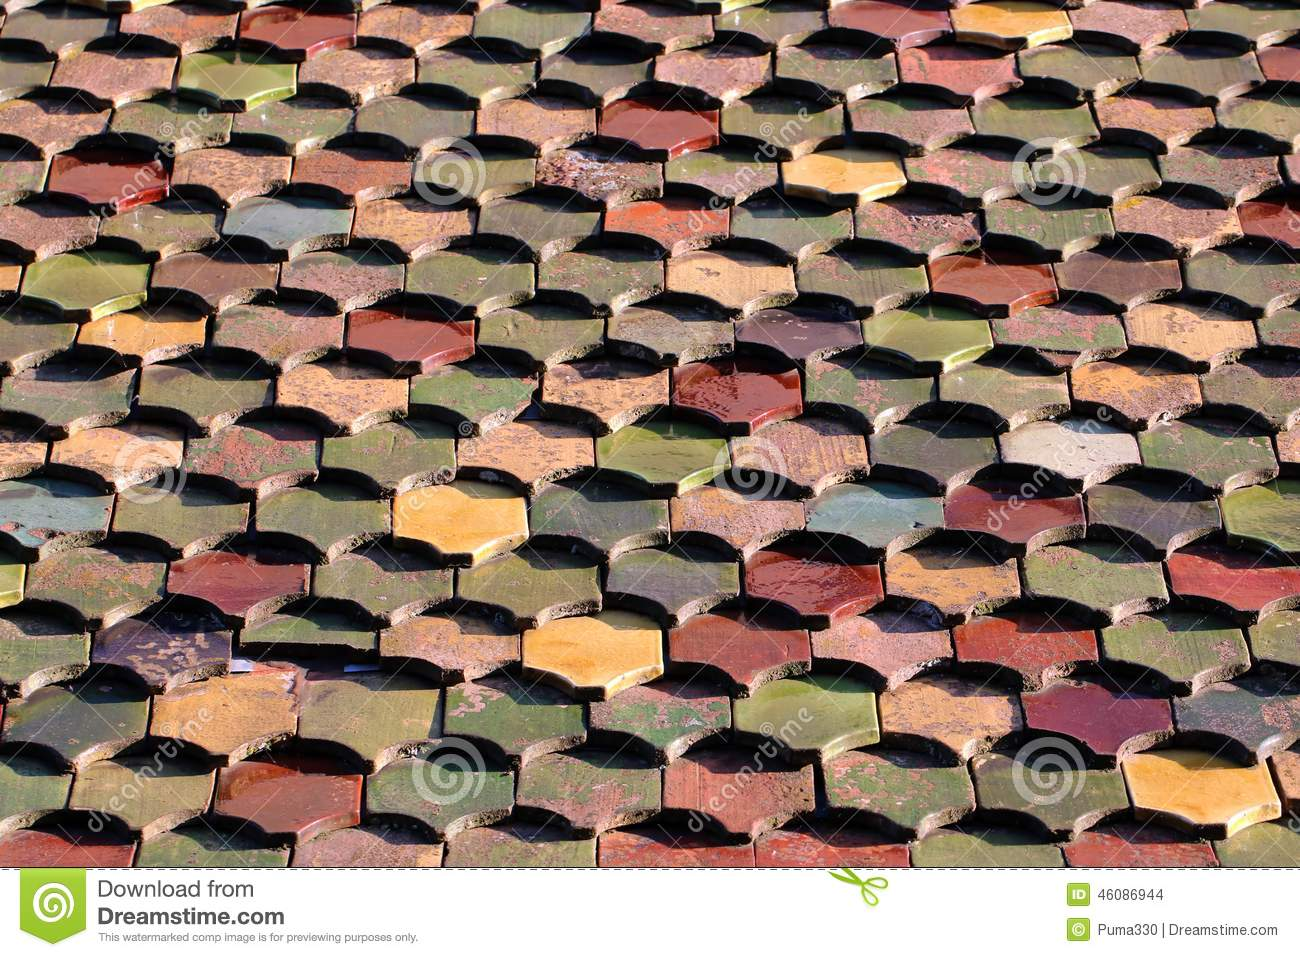 New house roof made of ceramic tile stock photo image of roof new house roof made of ceramic tile dailygadgetfo Gallery